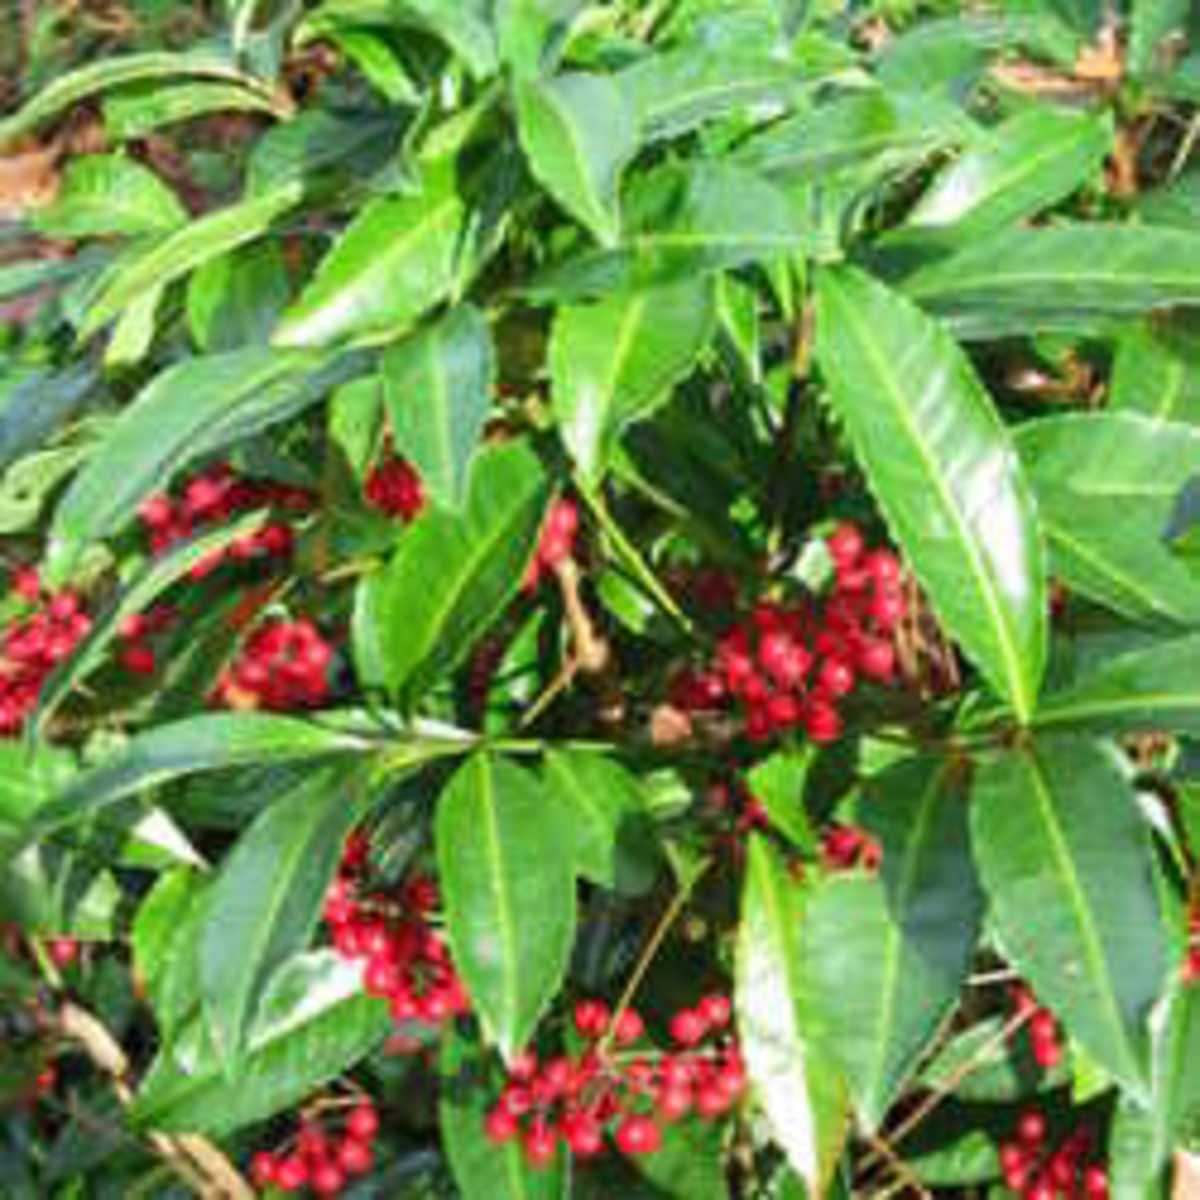 Coral Ardisia Displaying small red berries.